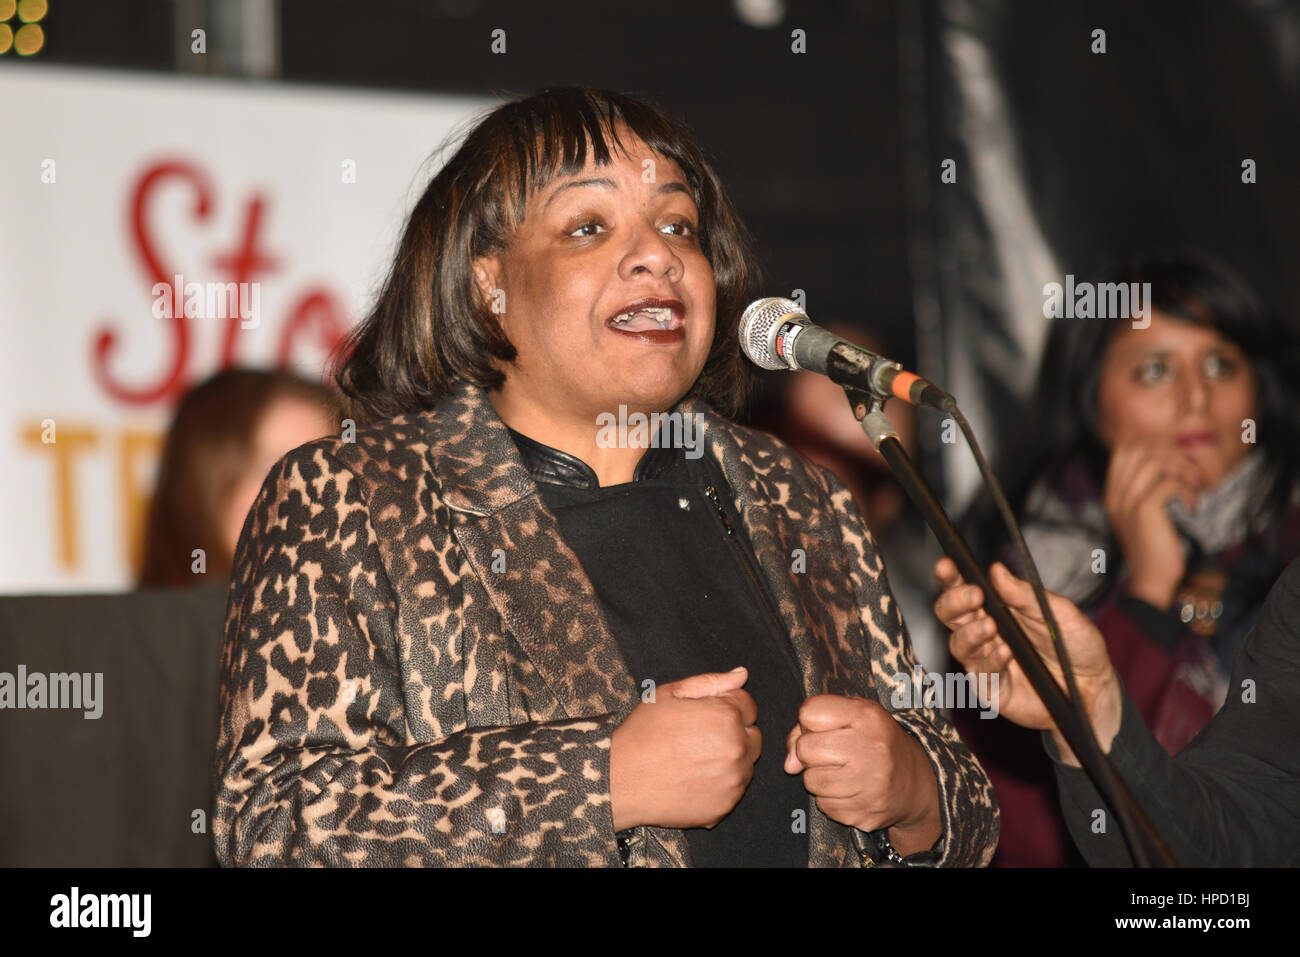 Diane Abbott speaking at a rally against Brexit, racism and Article 50 - Stock Image